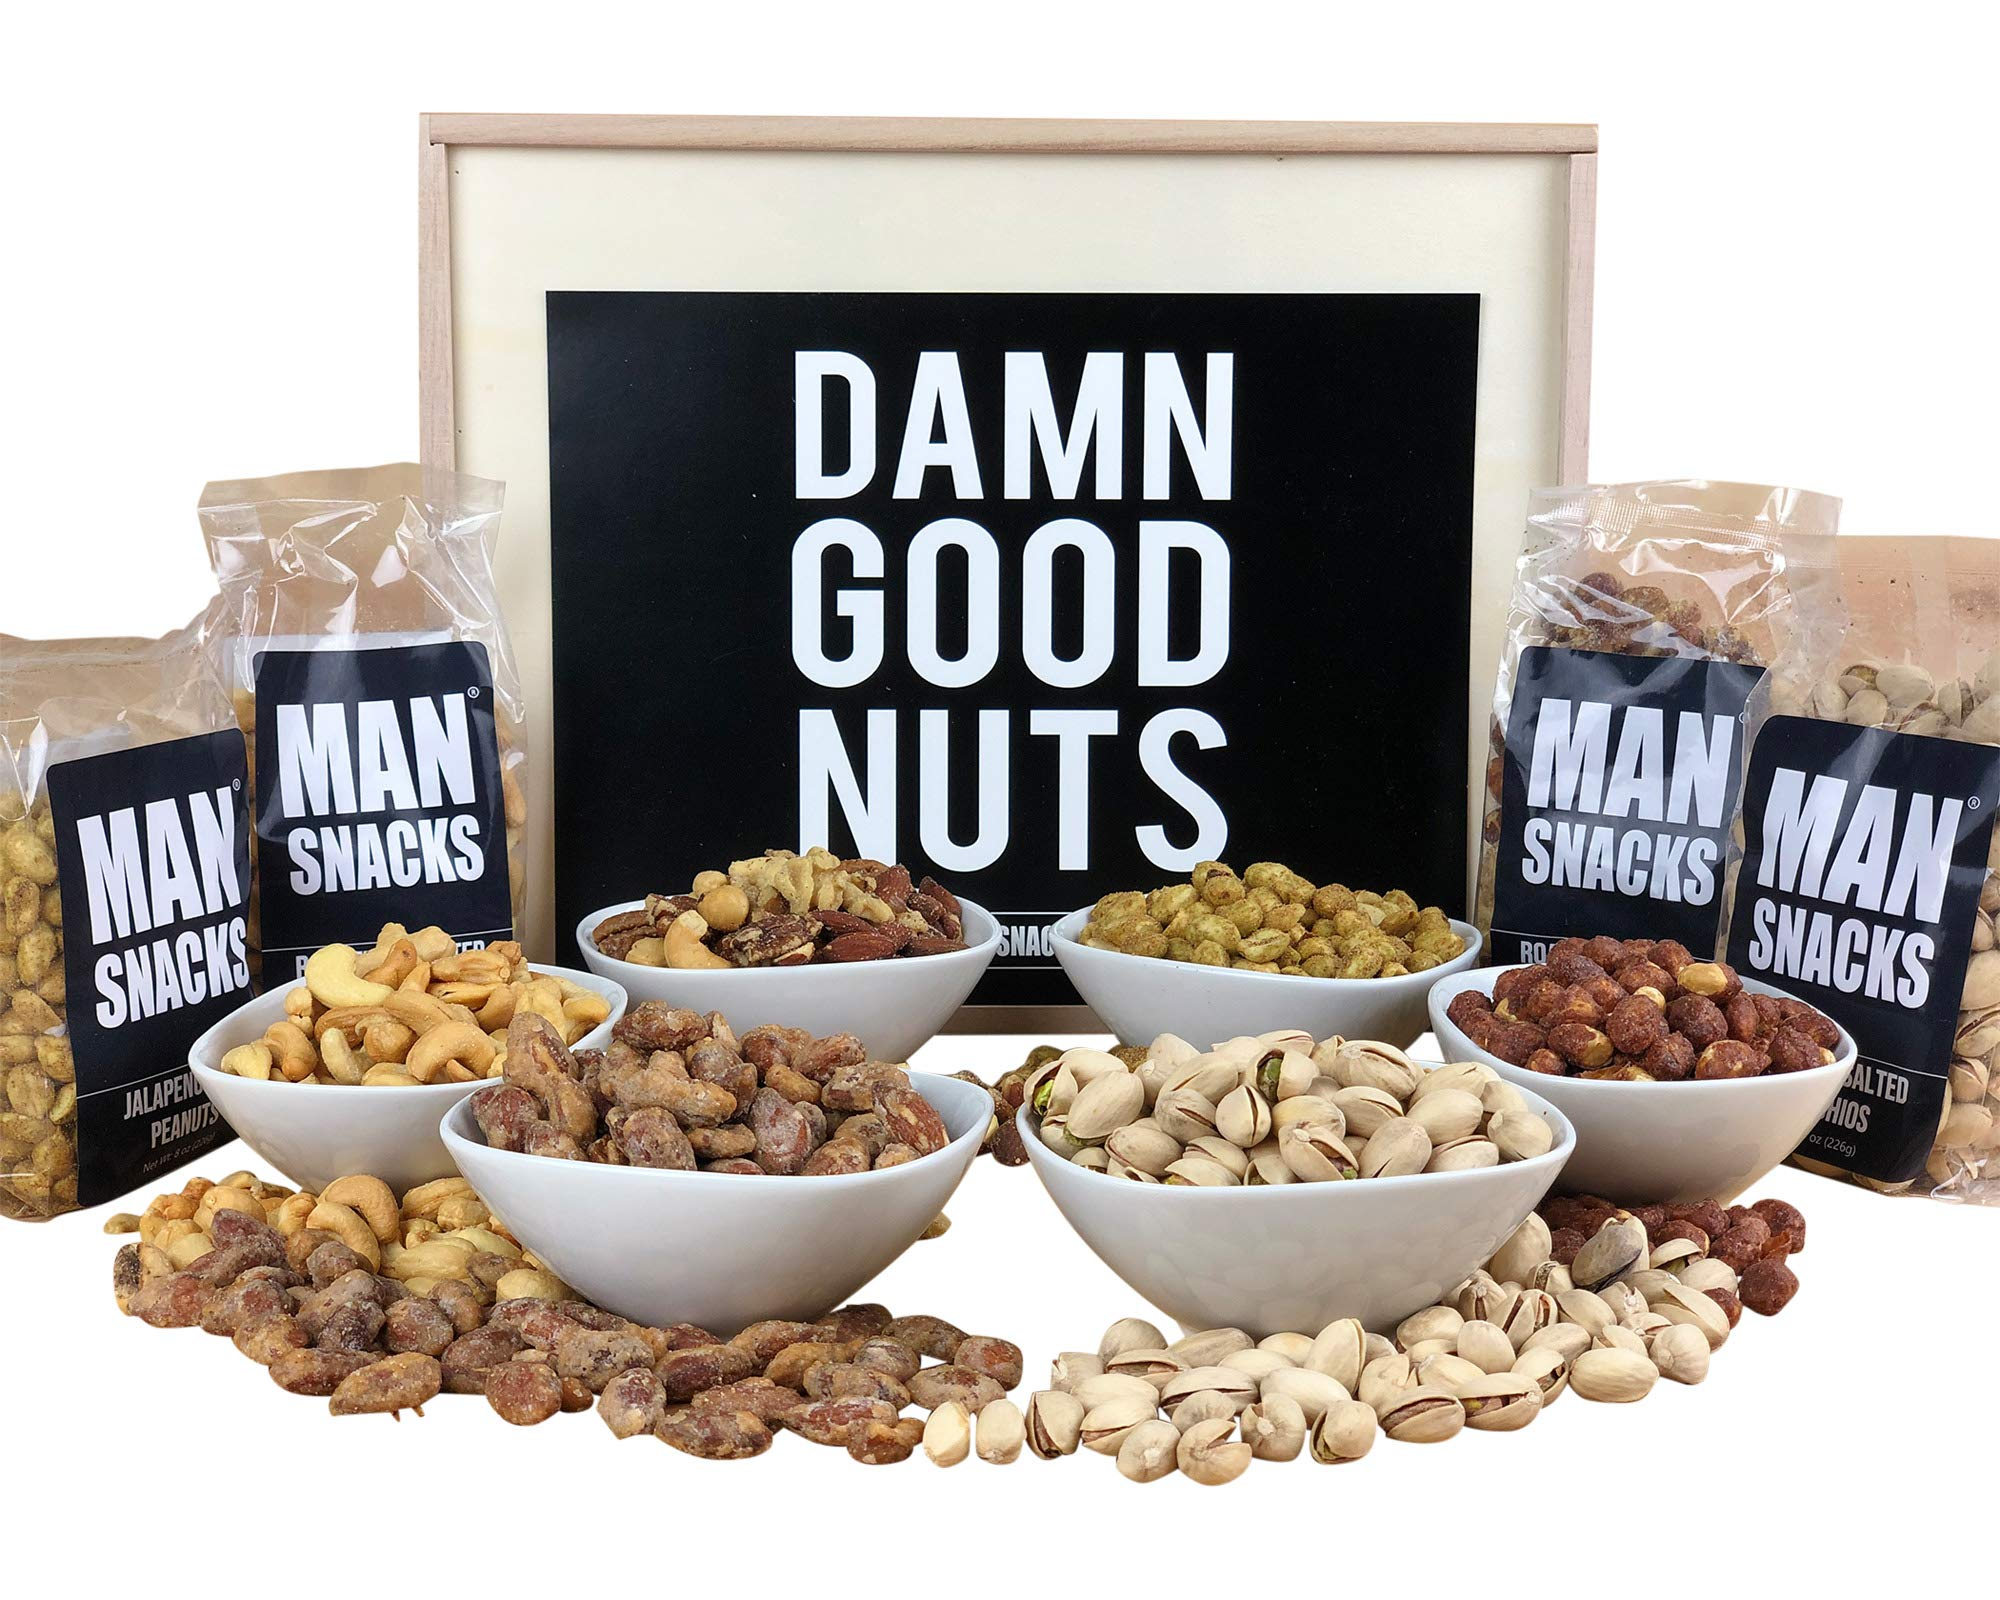 ManSnacks - DAMN GOOD NUTS - 3 pounds of really, really, really good nuts, packed in a manly wooden gift box. It's a gift basket for real men.